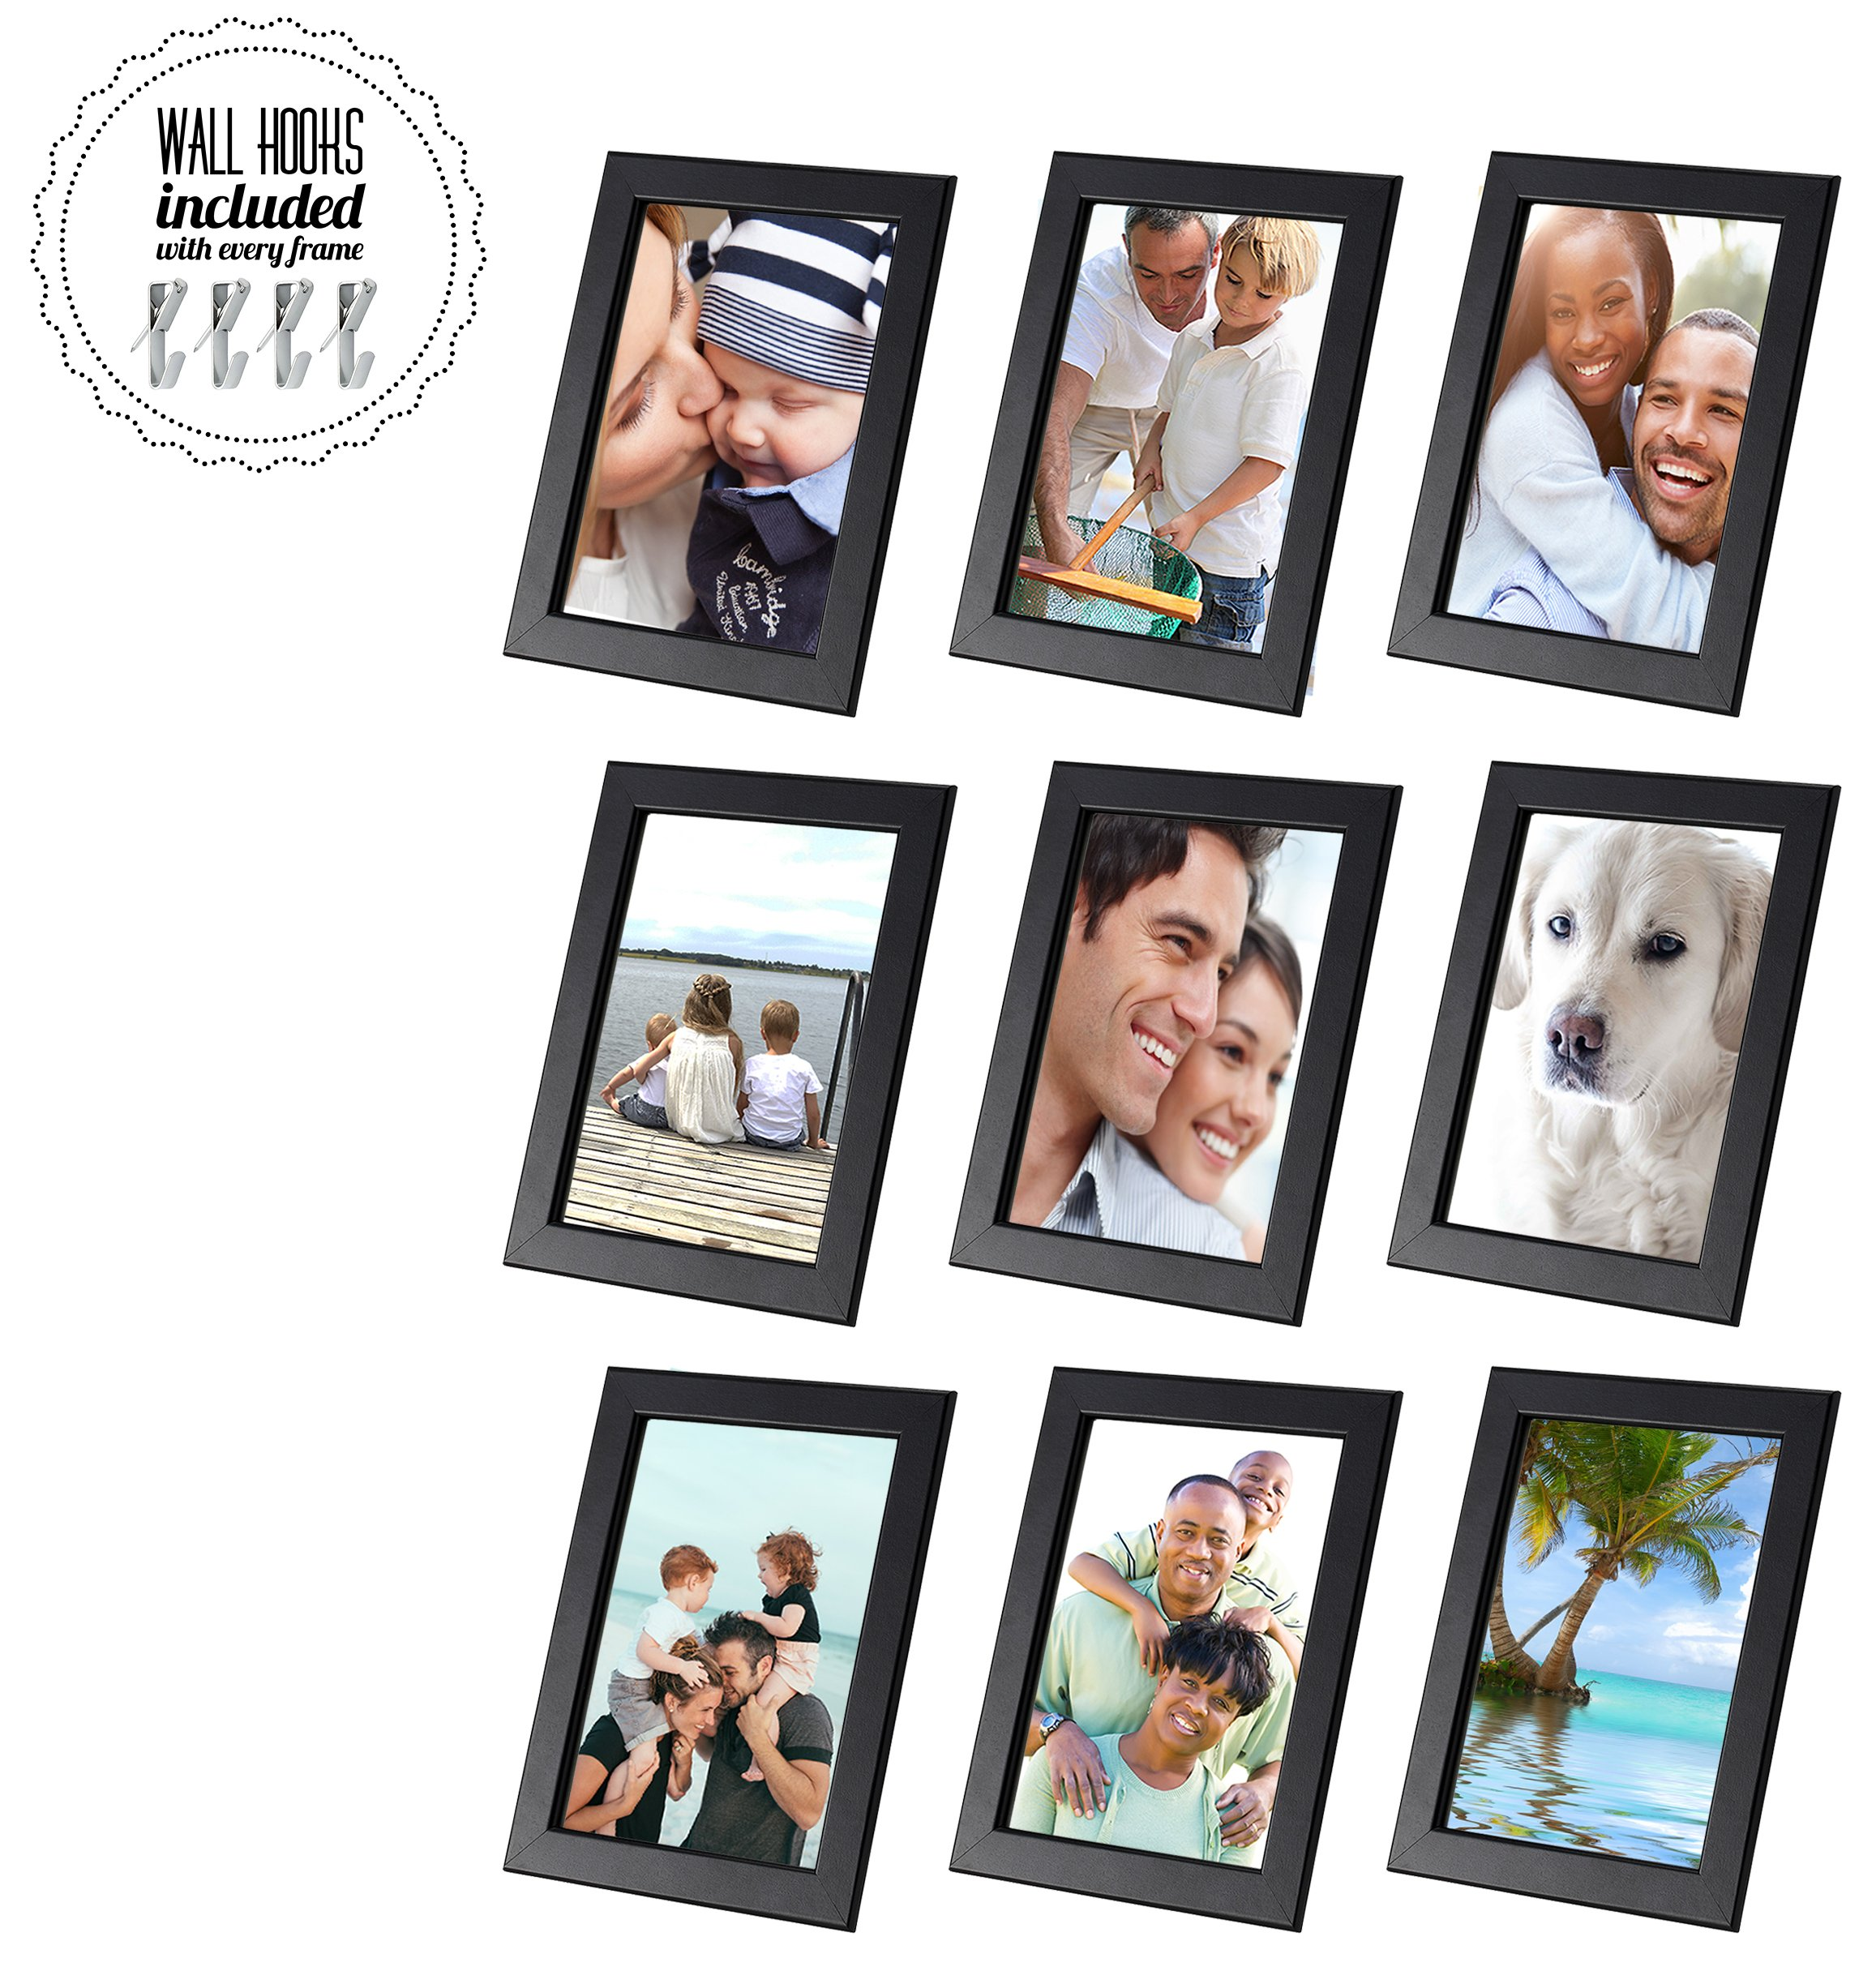 5 x7 Family Picture Frame Collage With Hardware [A+++QBG Wall Hooks]   Set of 9 Photo Frames For Wall or Desk (5 x 7 Collage of 9, Black) by Fiskbo [Picture Frame Collage]